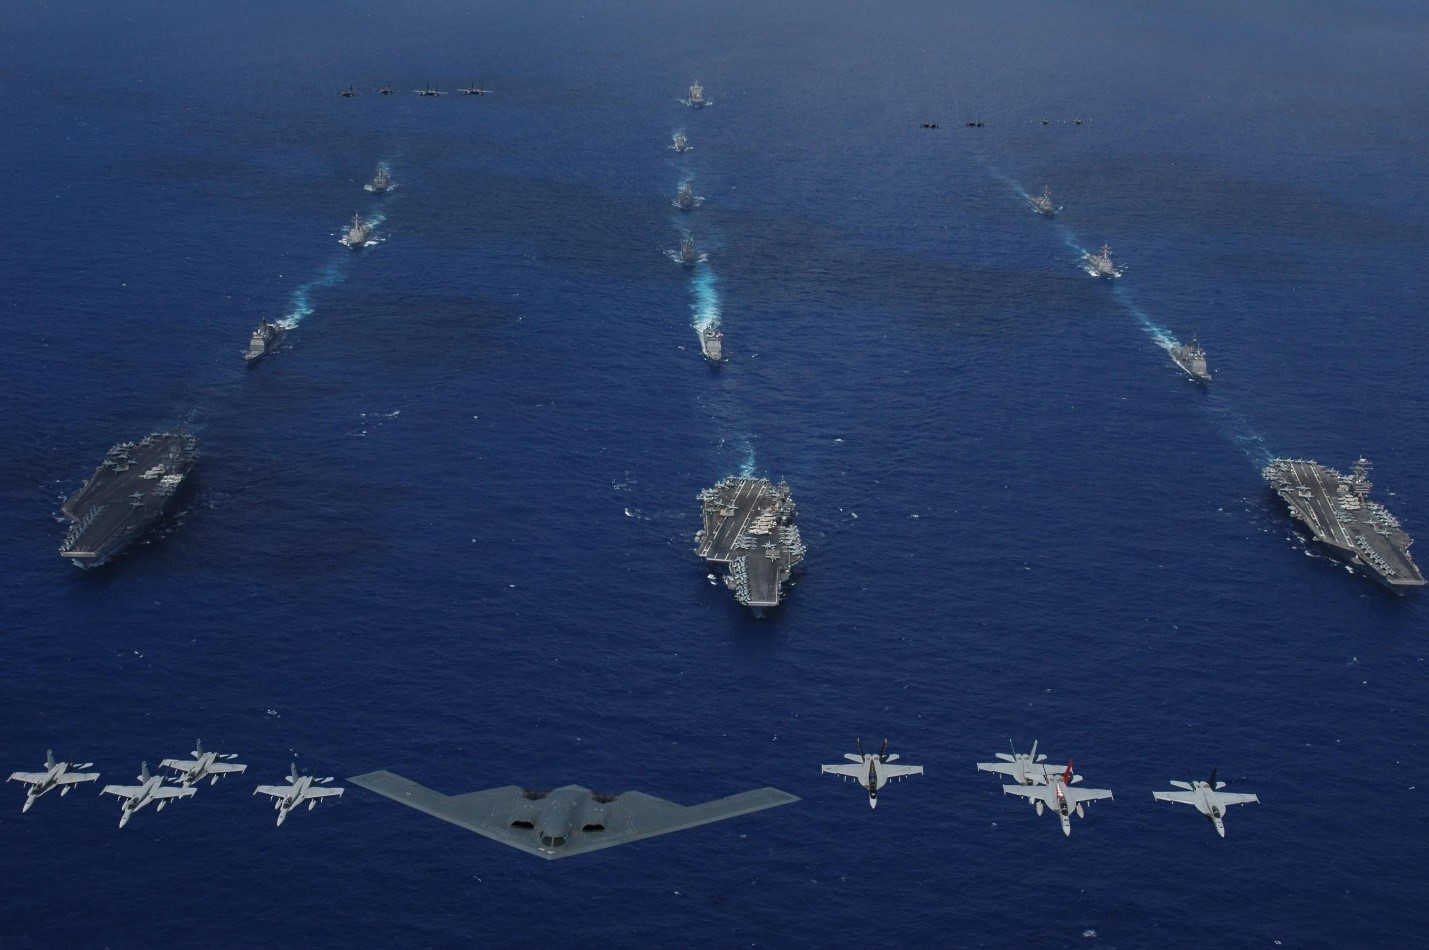 Although the United States possesses a vast array of naval and aerial assets to bring to bear in any theoretical conflict in China's backyard, it is hard to estimate the resolve of a U.S. administration facing significant losses in such a military engagement.